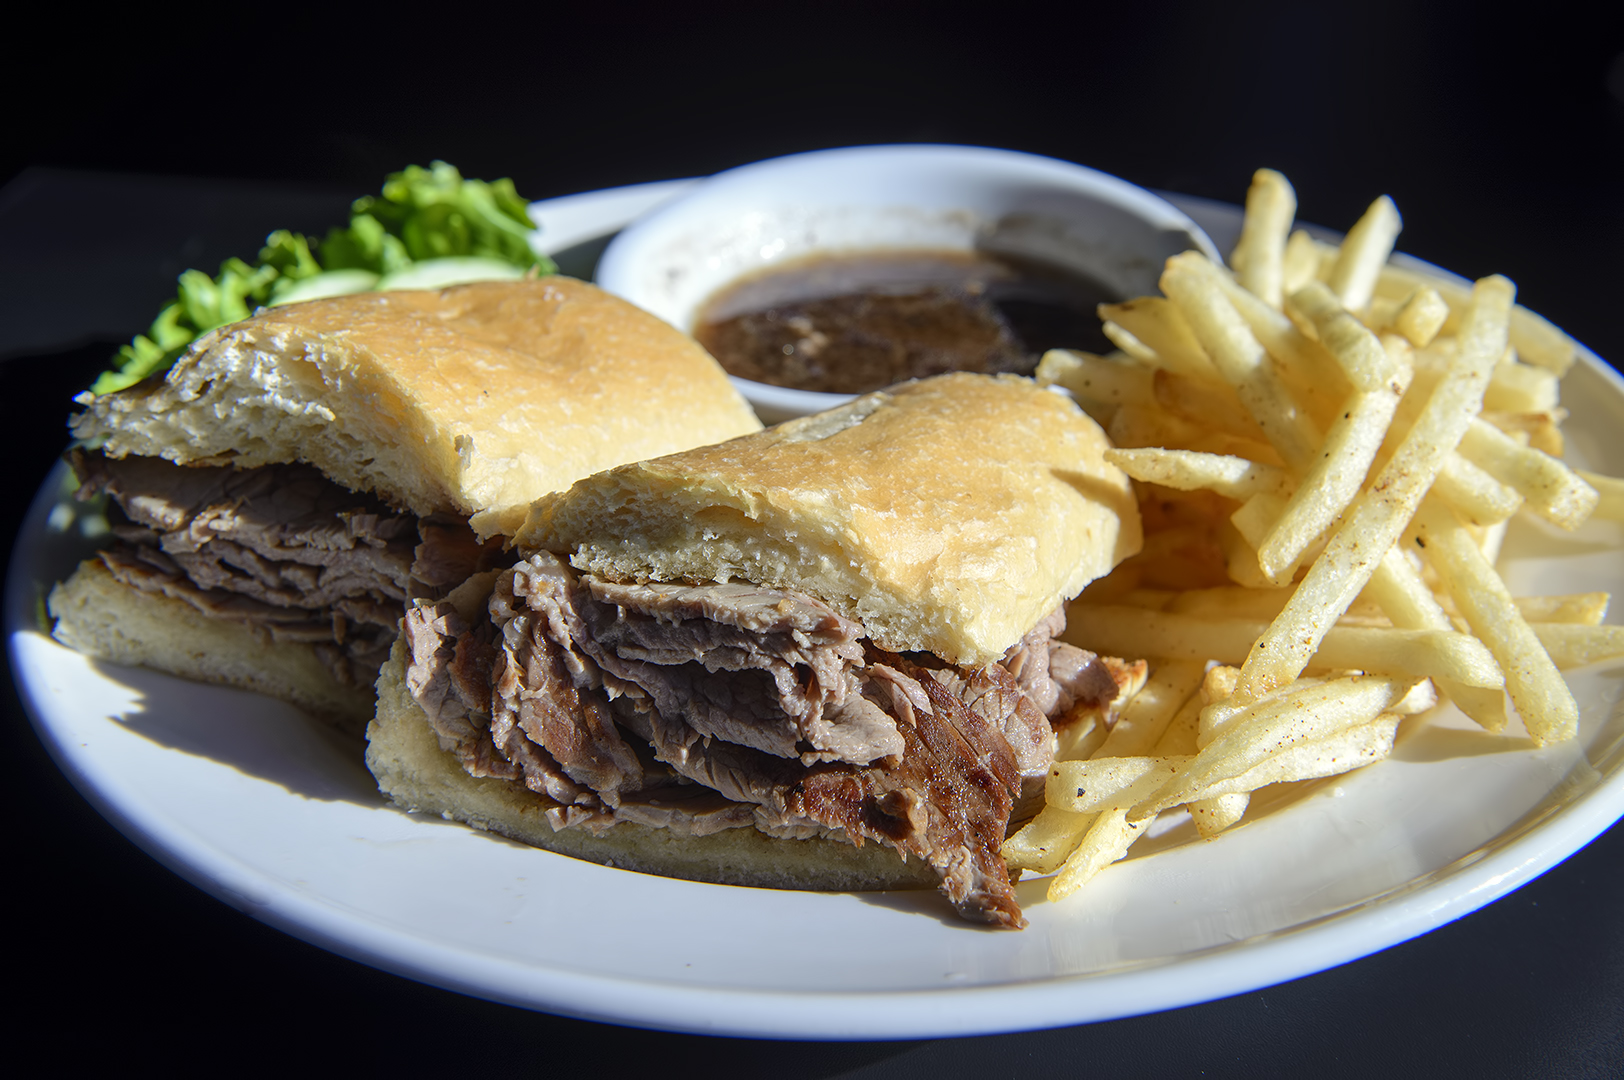 french dip au jus club 66 ashland oregon menu directions Uzi's ...